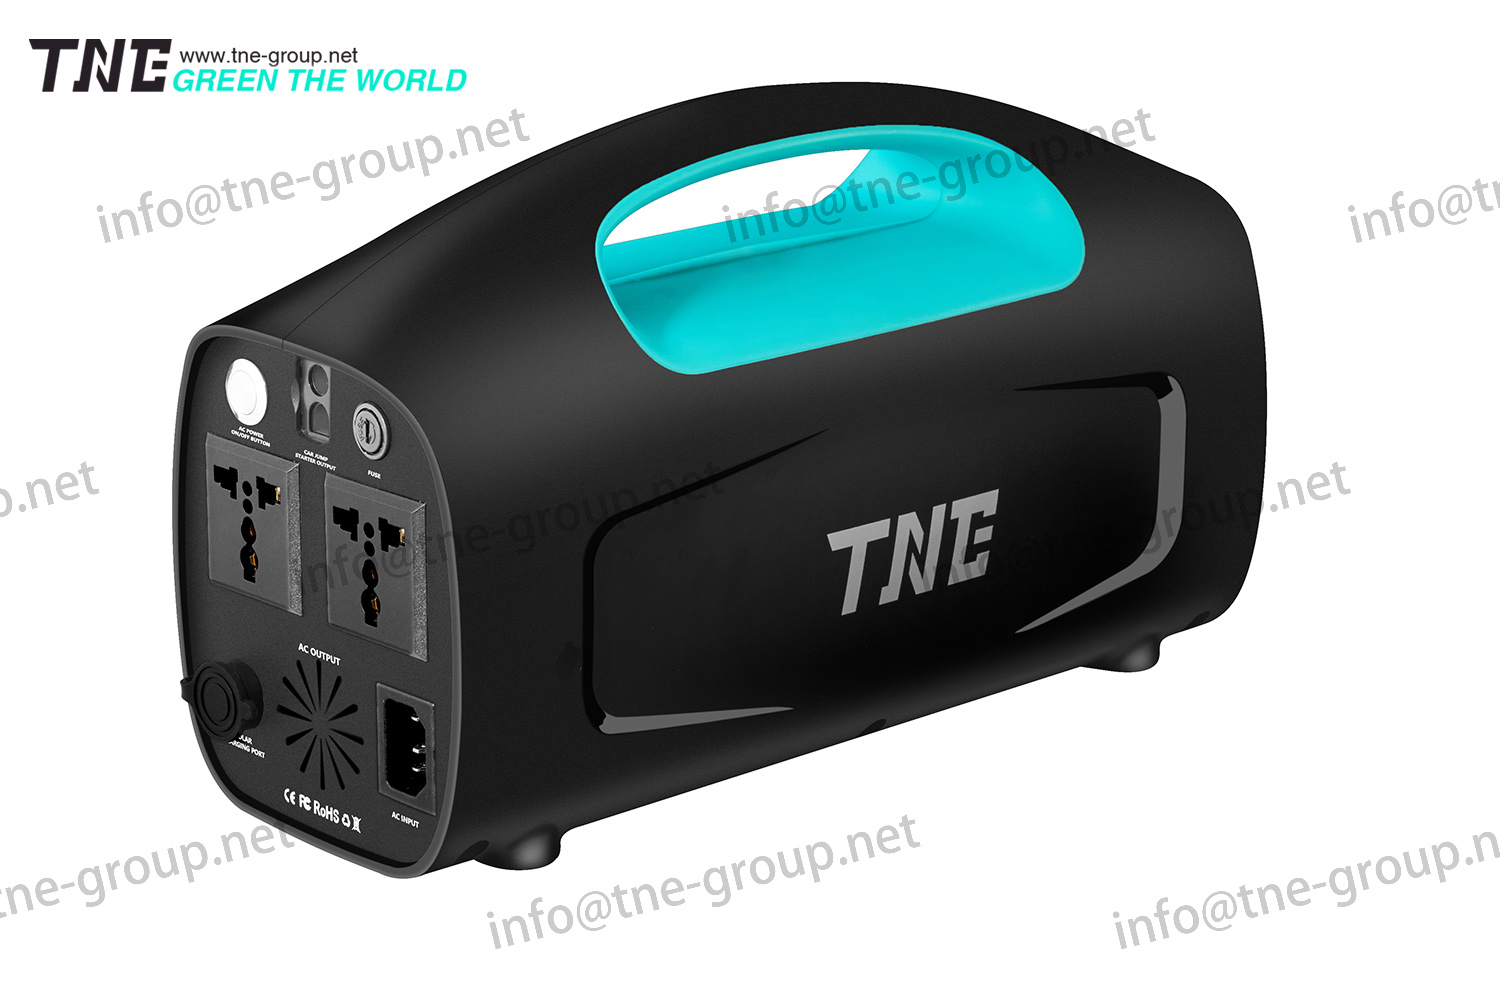 TNE Portable Solar Online Lithium Generator Power Bank UPS System with Solar Panel Charger